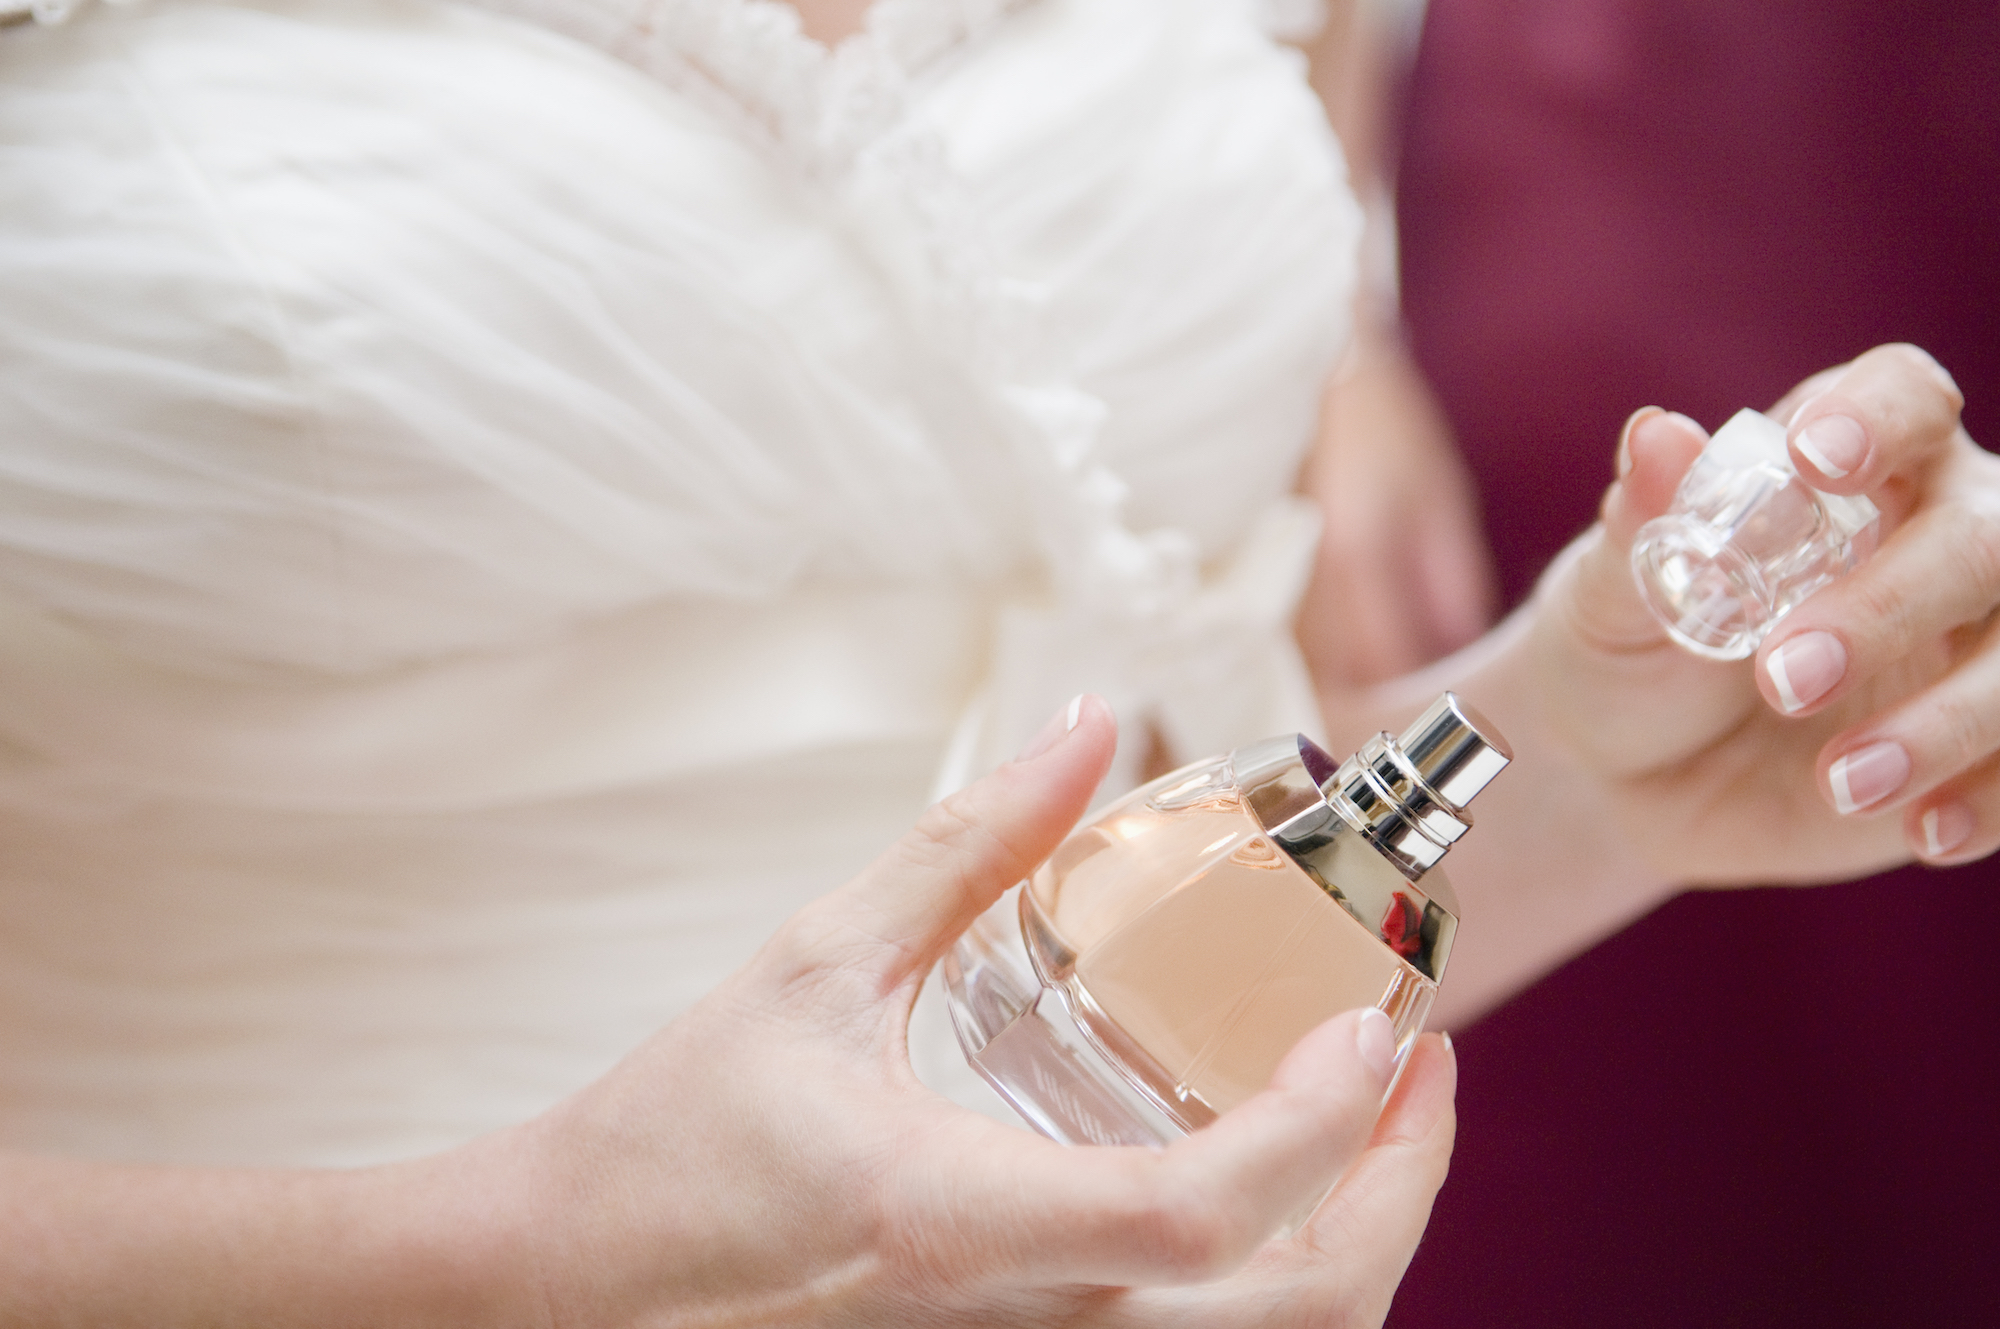 Here's What Fragrance to Wear on Your Wedding Based on Its Theme